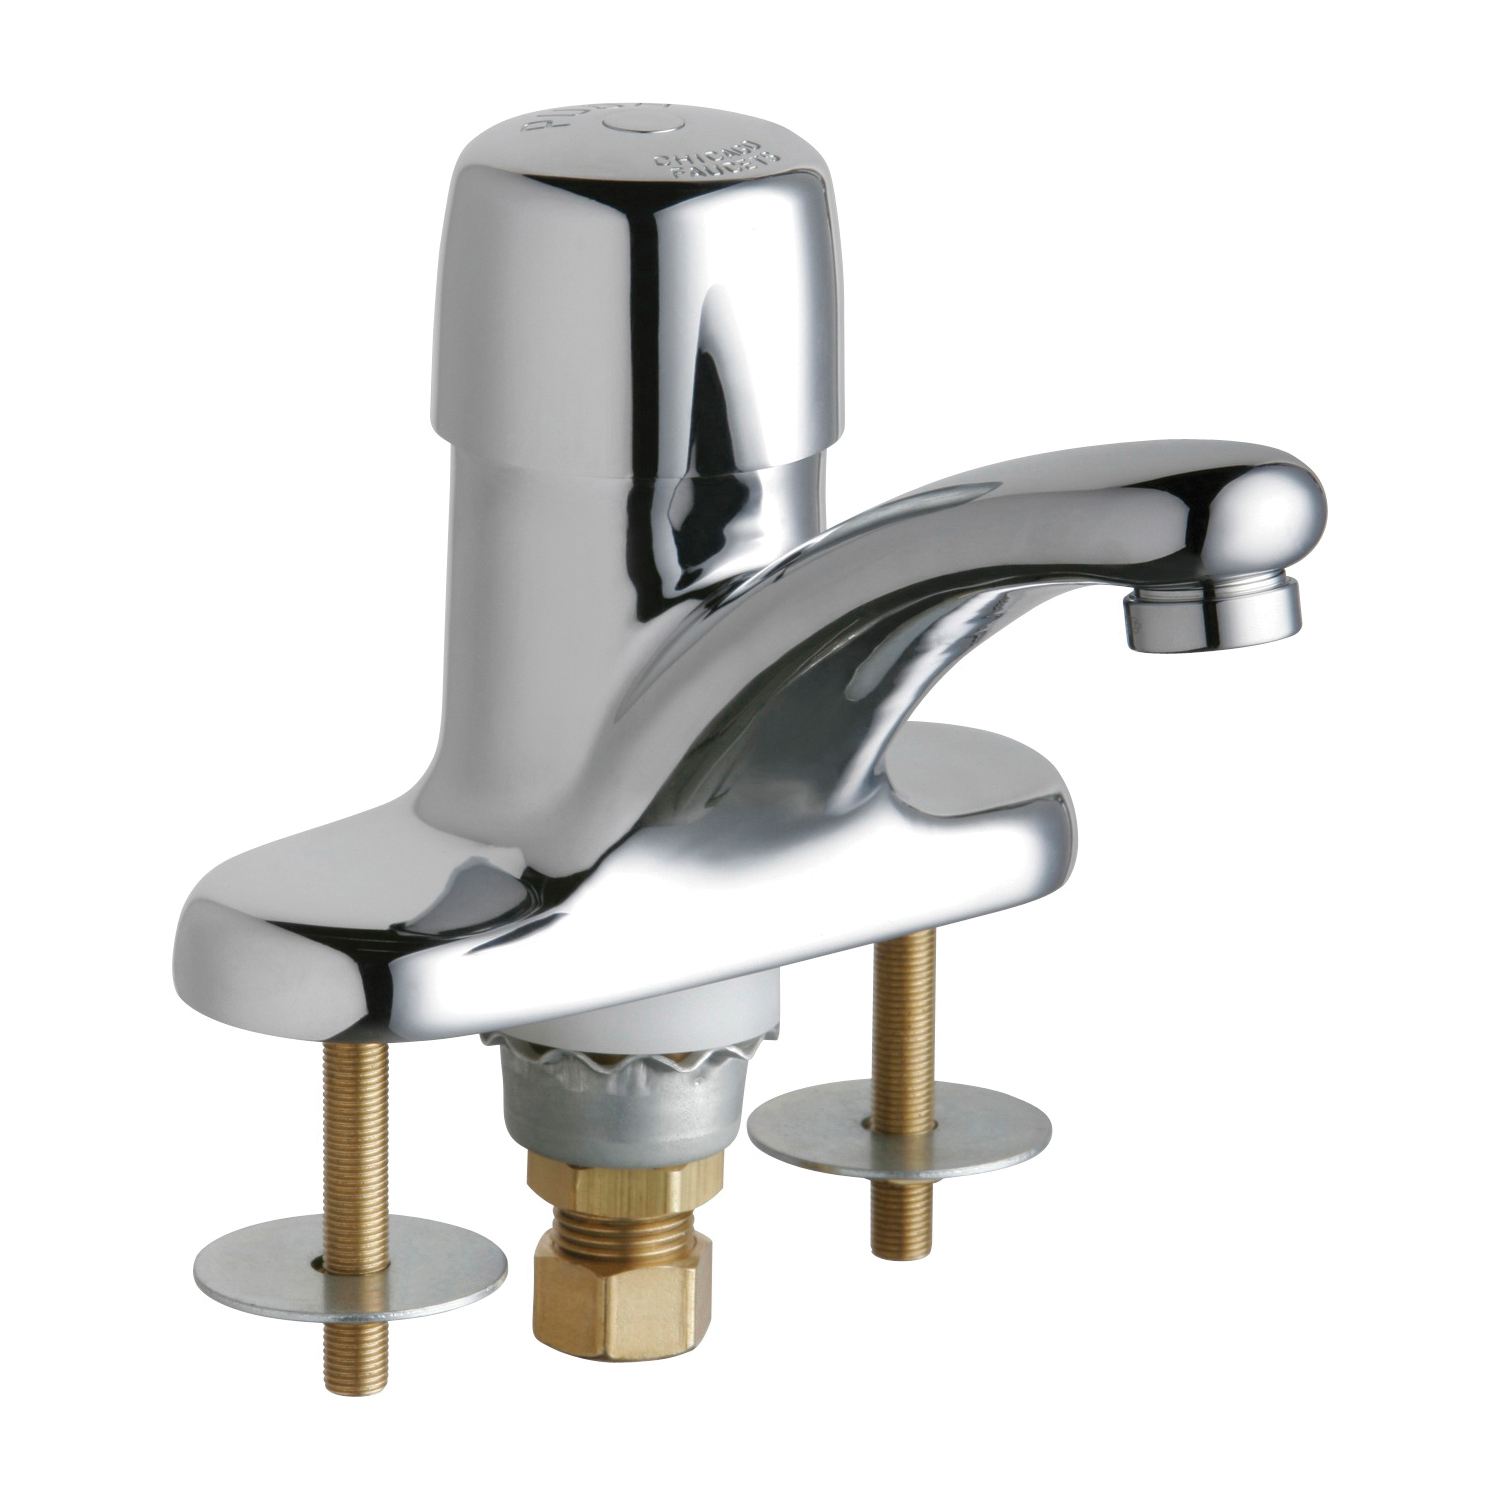 Chicago Faucet® 3400-ABCP Single Supply Metering Sink Faucet, Polished Chrome, 1 Handles, 0.5 gpm Flow Rate